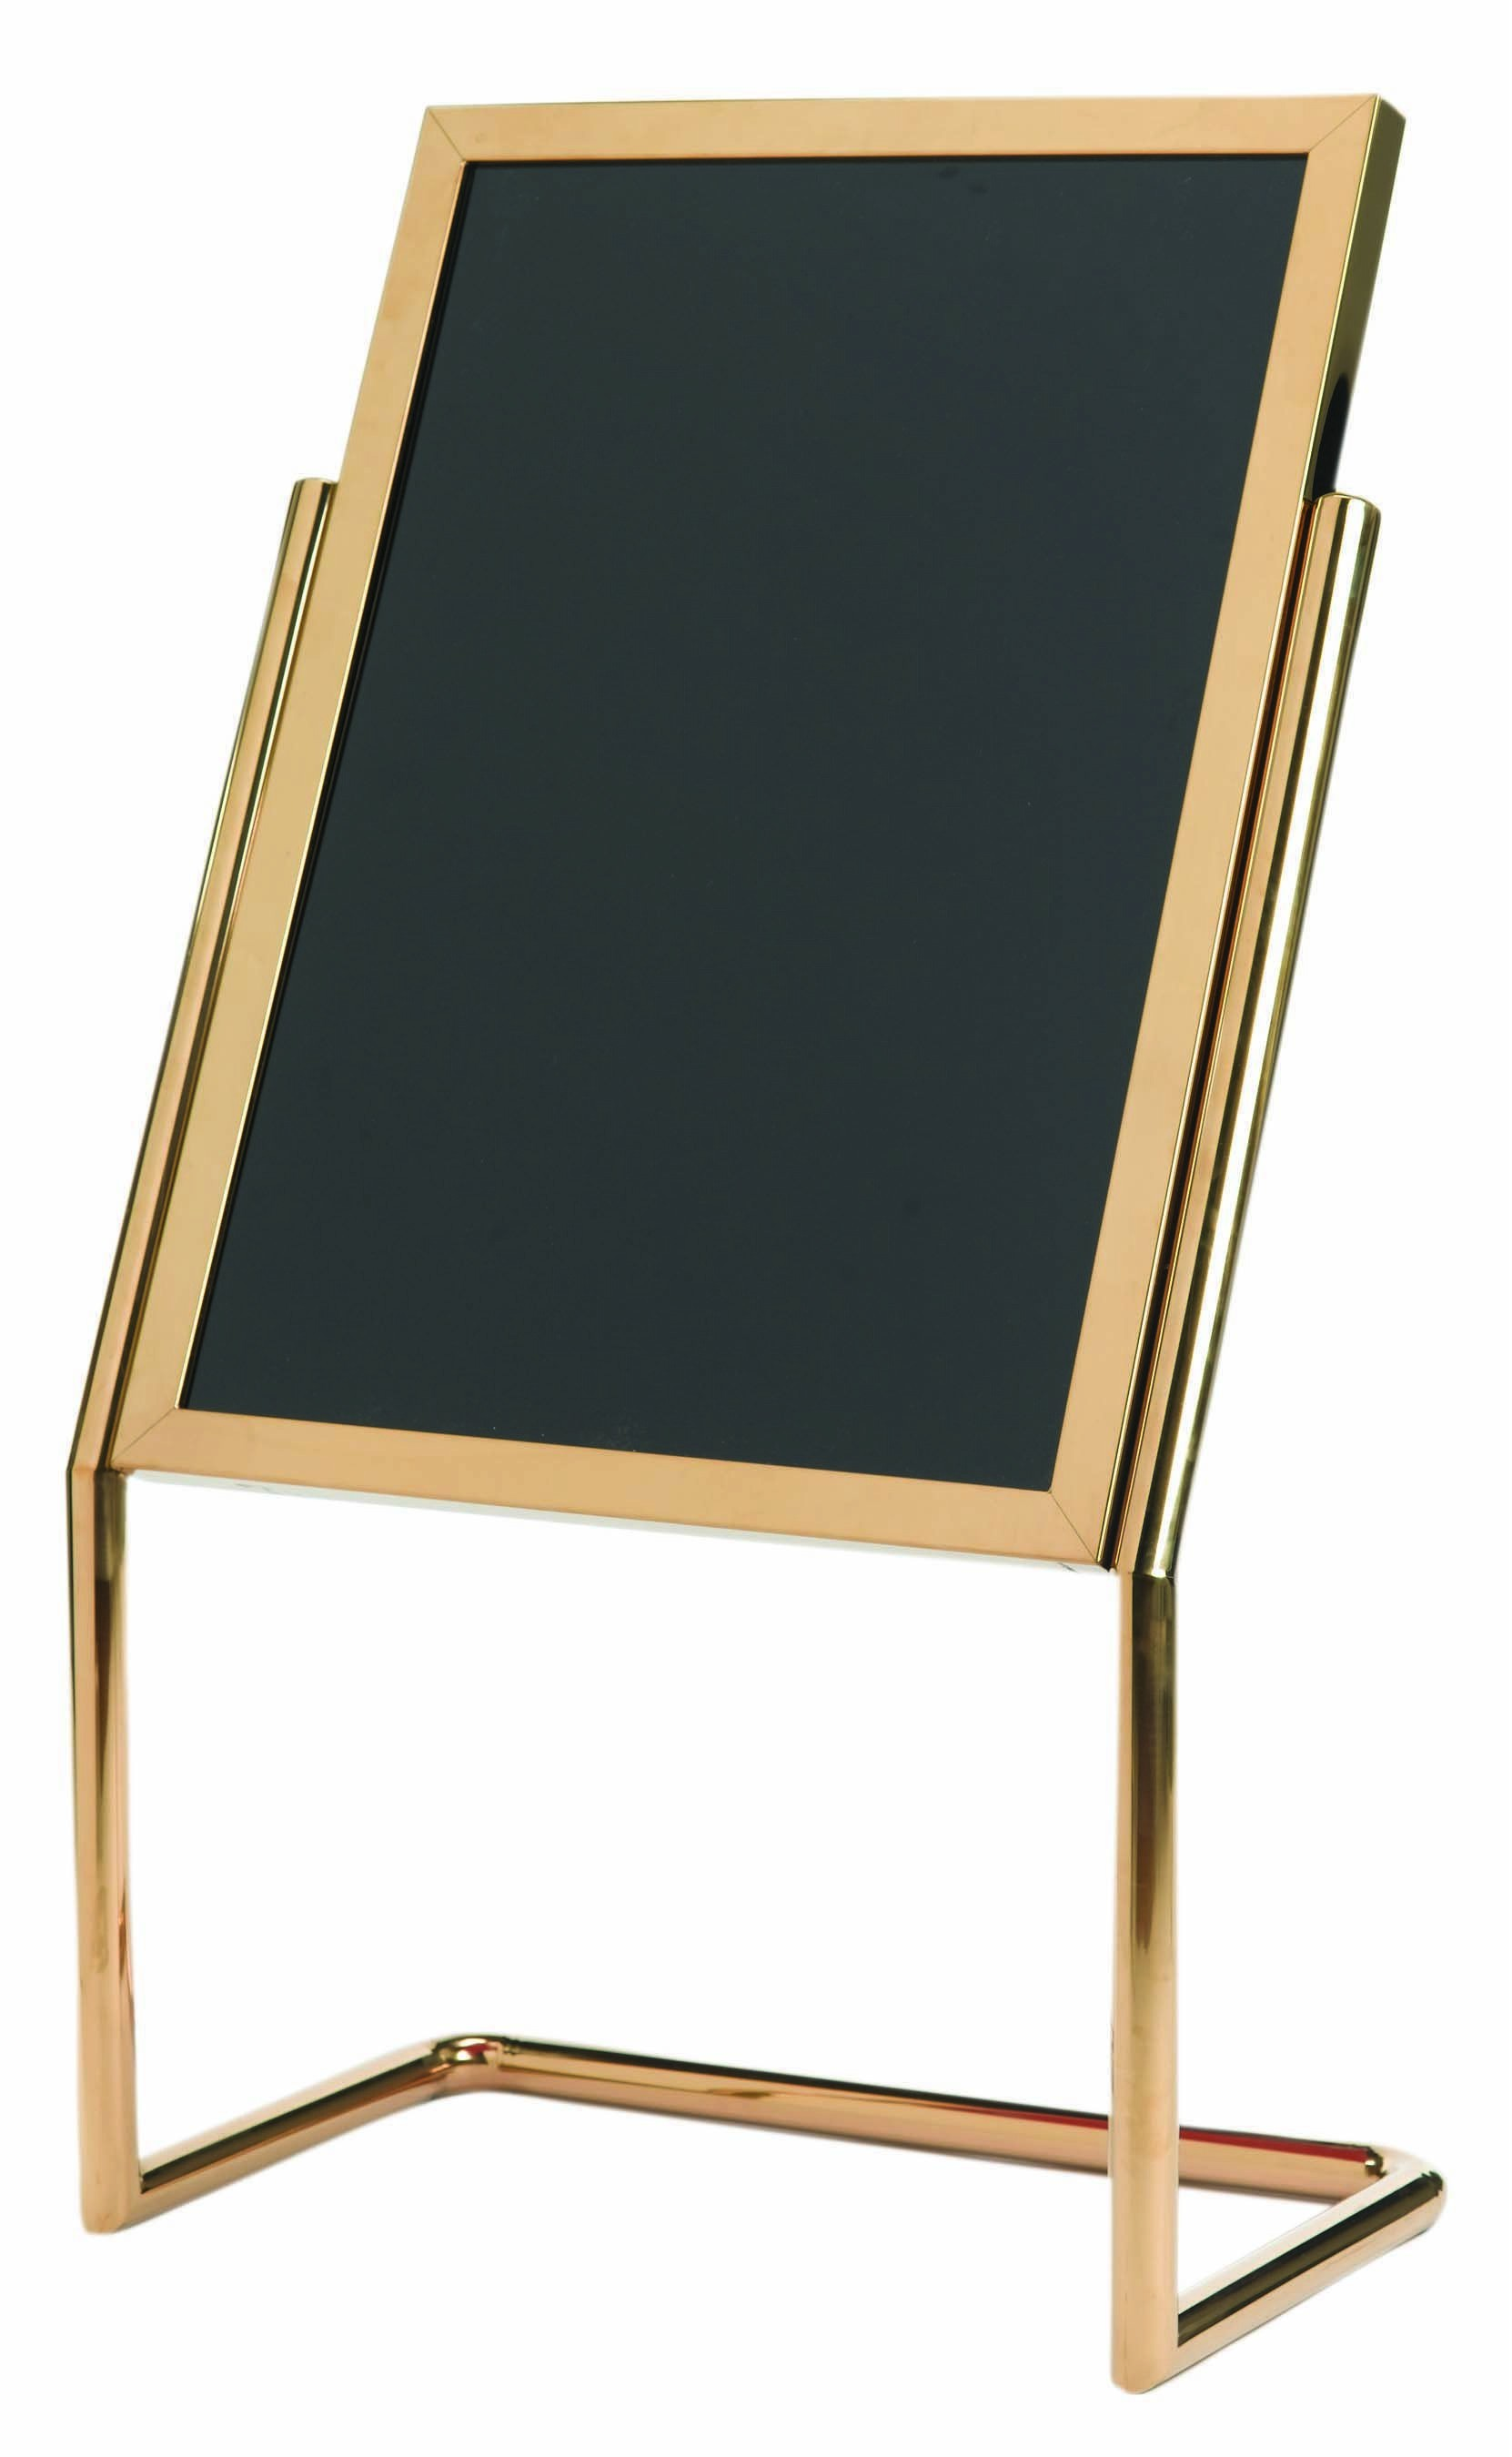 Aarco Products P-17B Double Pedestal Free Standing Display/Broadcaster Brass Frame with Markerboard